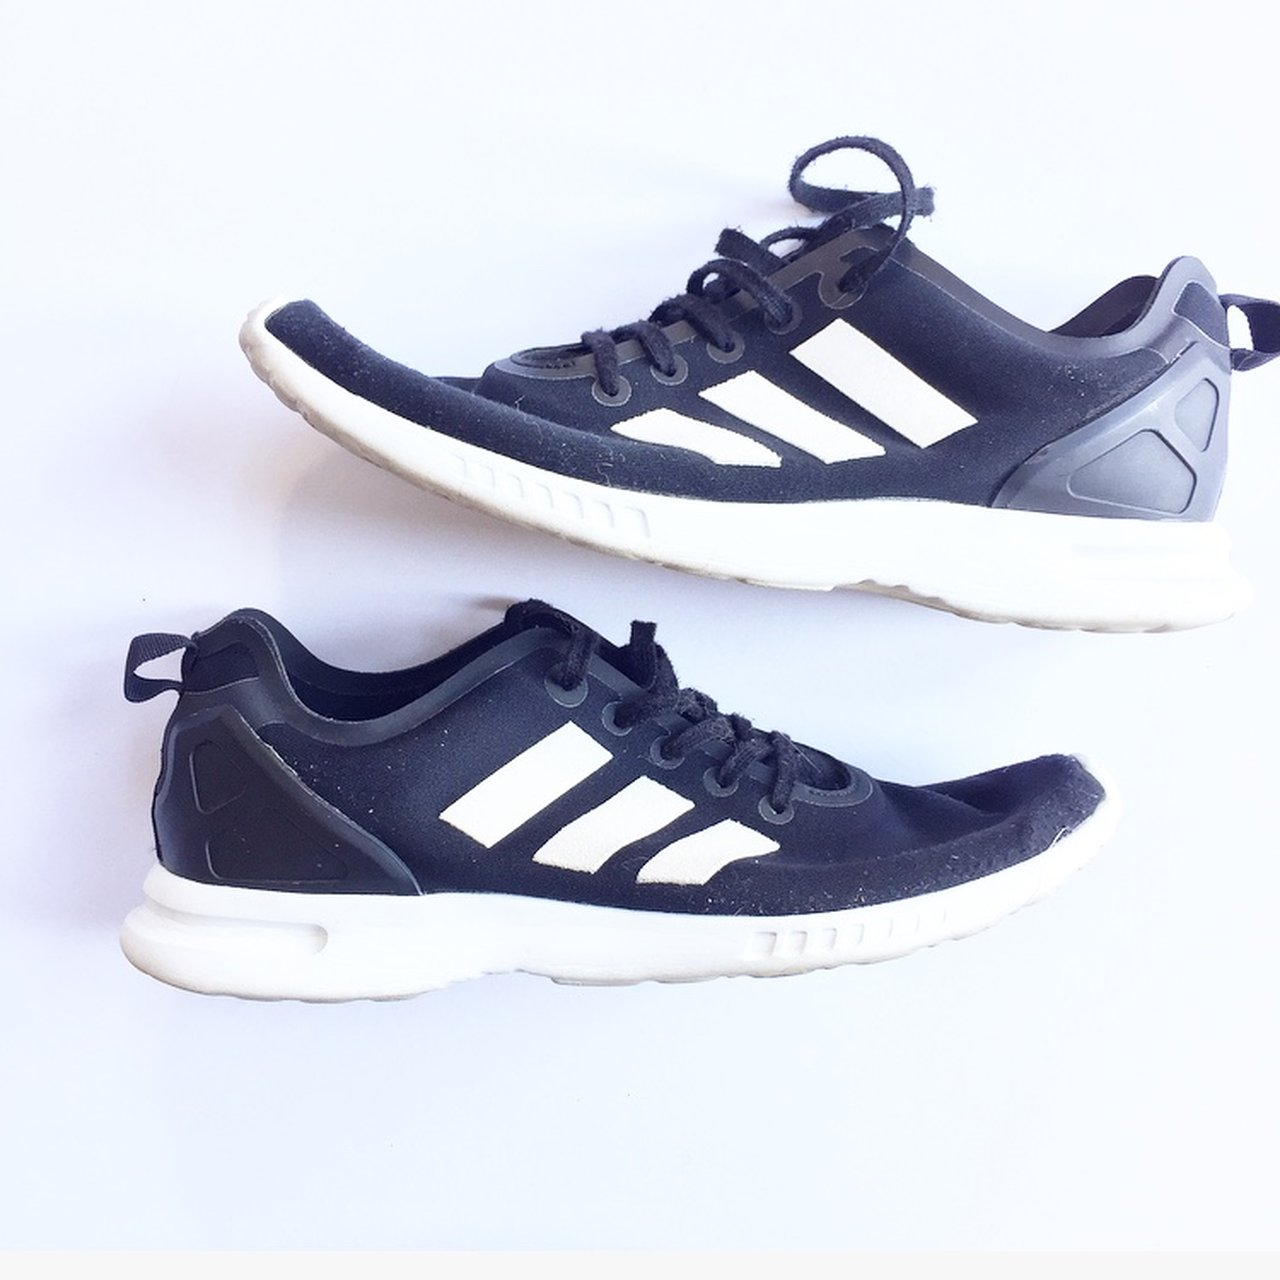 size 6 adidas flux